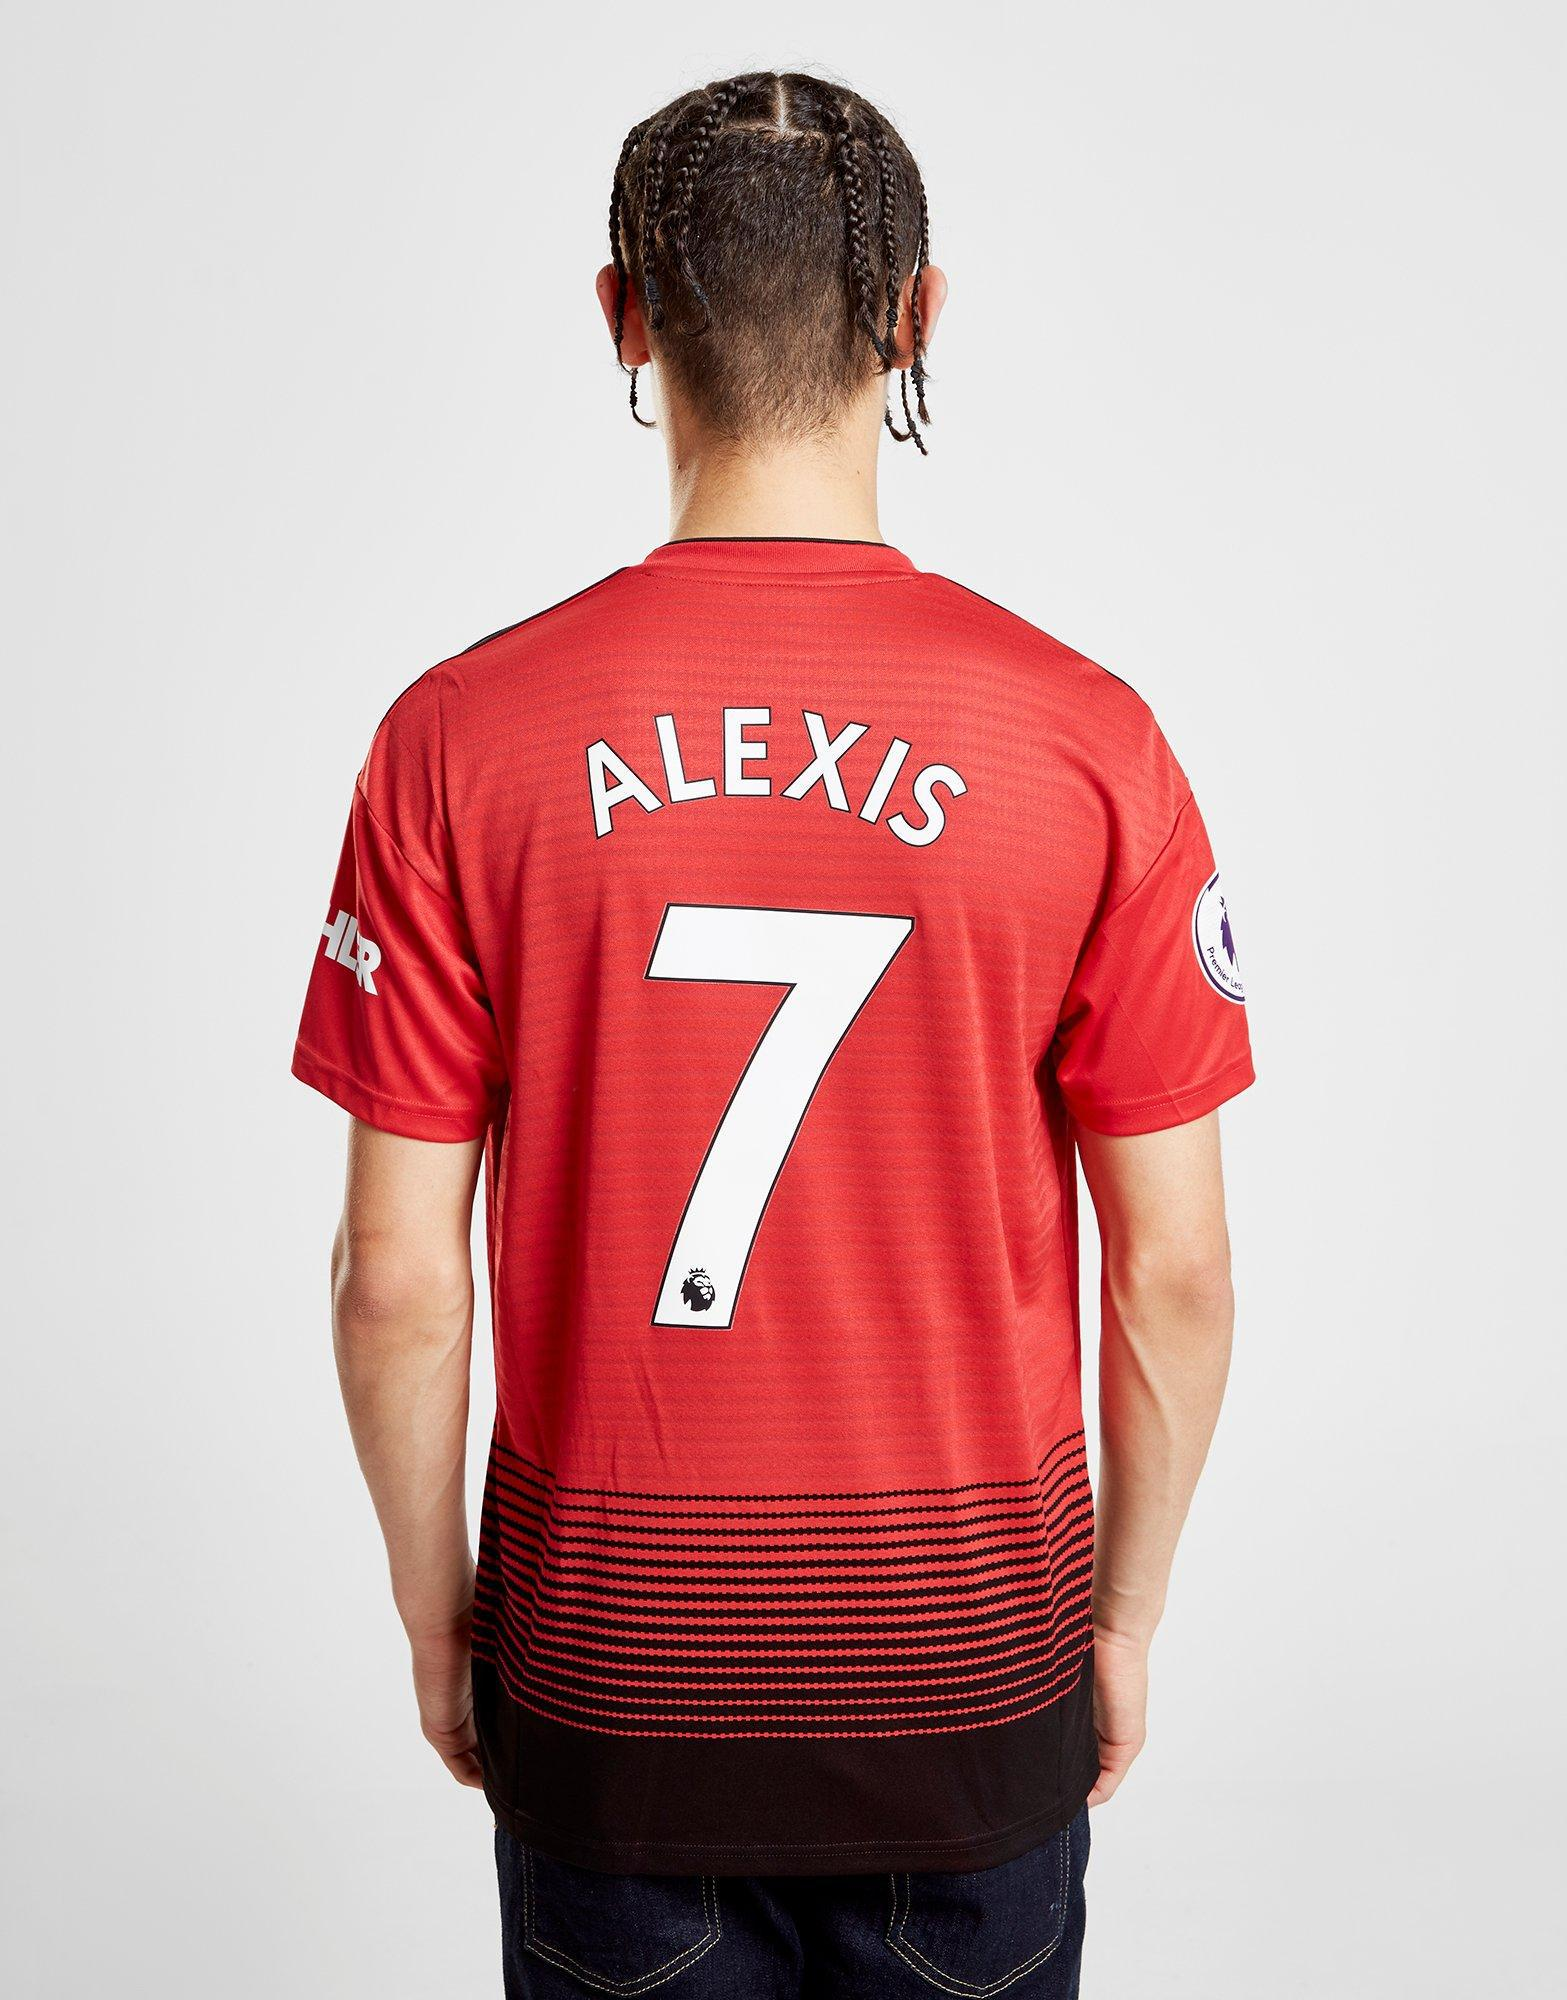 3bcc3db5 Lyst - Adidas Manchester United Fc 2018/19 Alexis #7 Home Shirt in ...